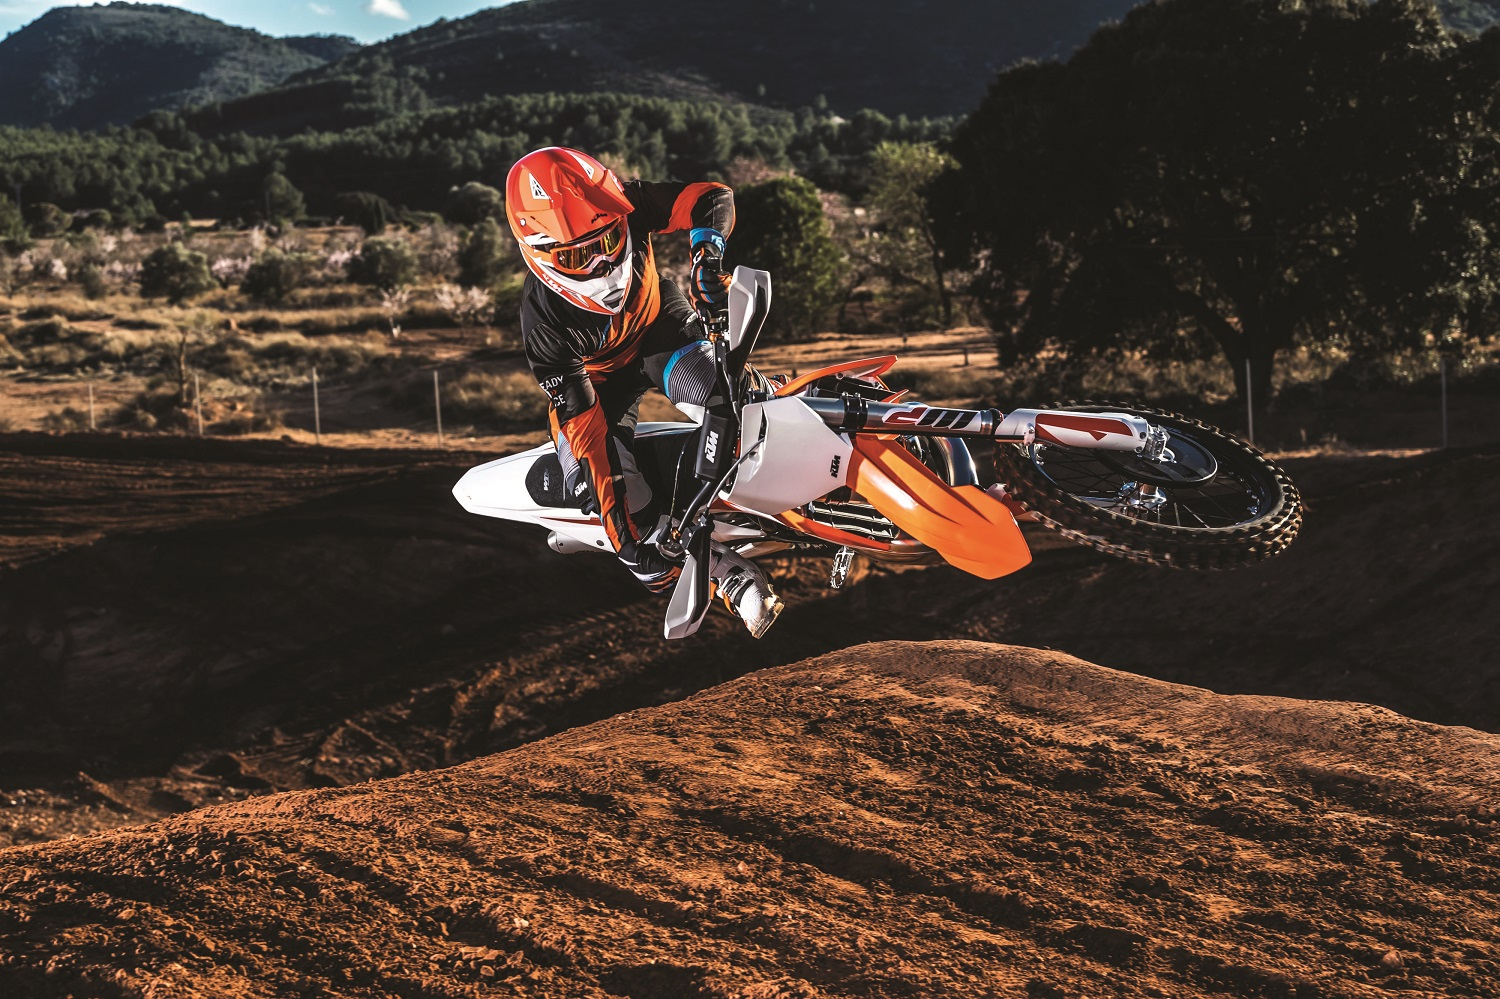 01_Action_KTM 250 SX MY2019